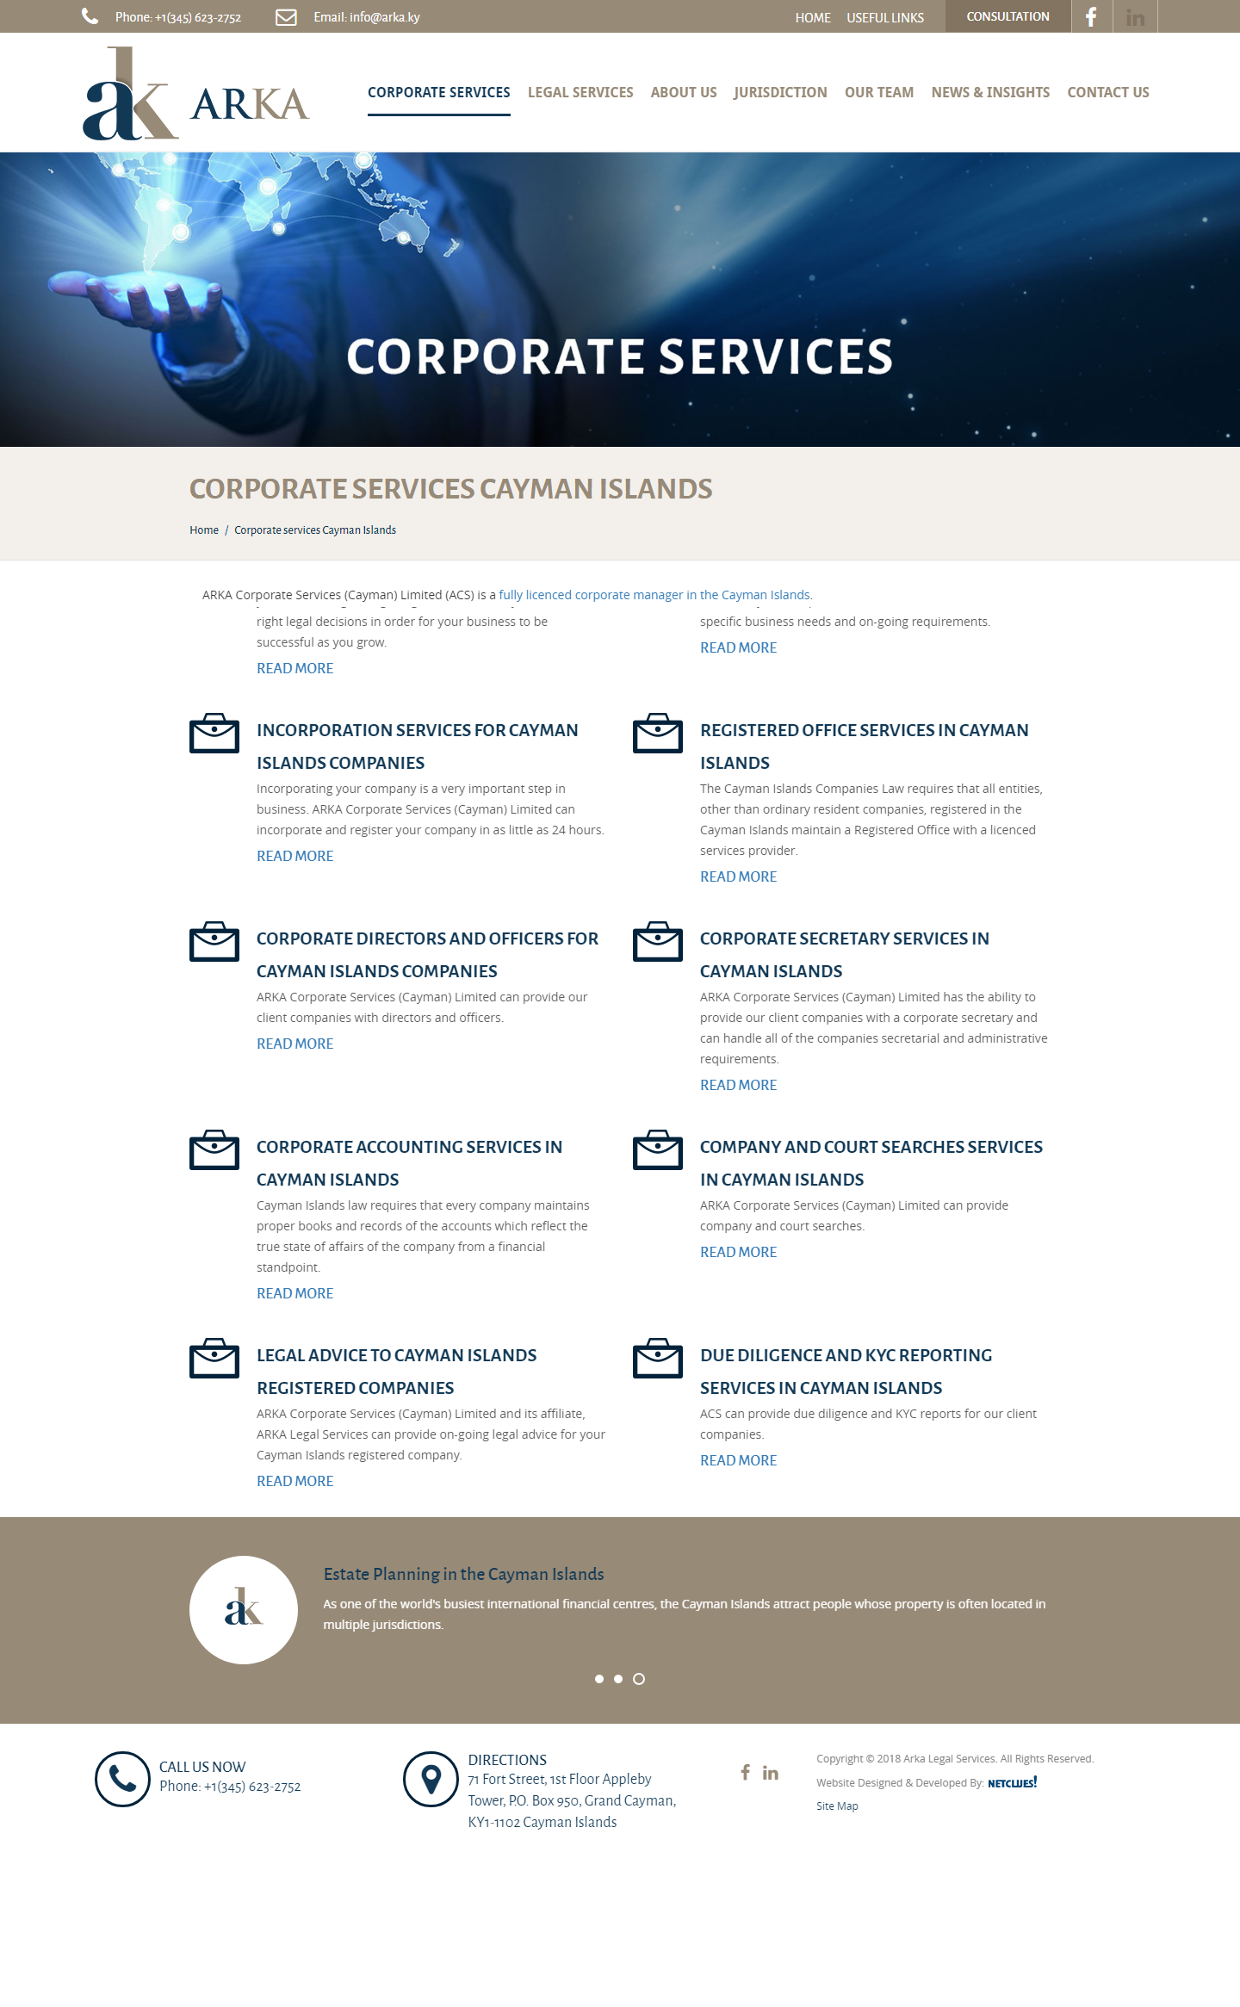 Are you looking for the corporate services? ARKA Corporat